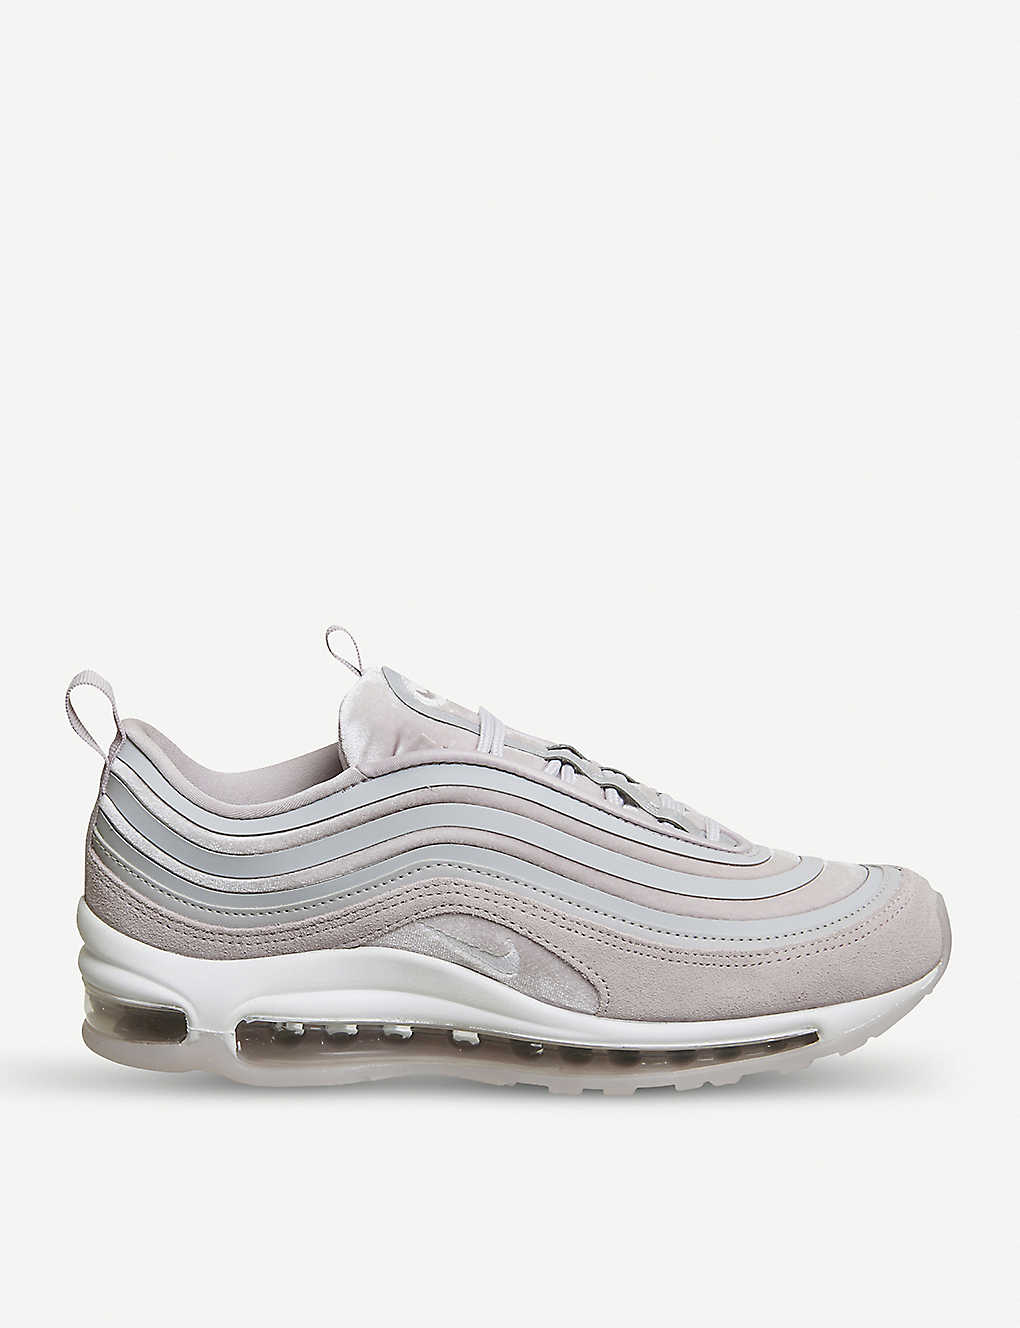 34e1b216b0 NIKE - Air Max 97 Ultra trainers | Selfridges.com